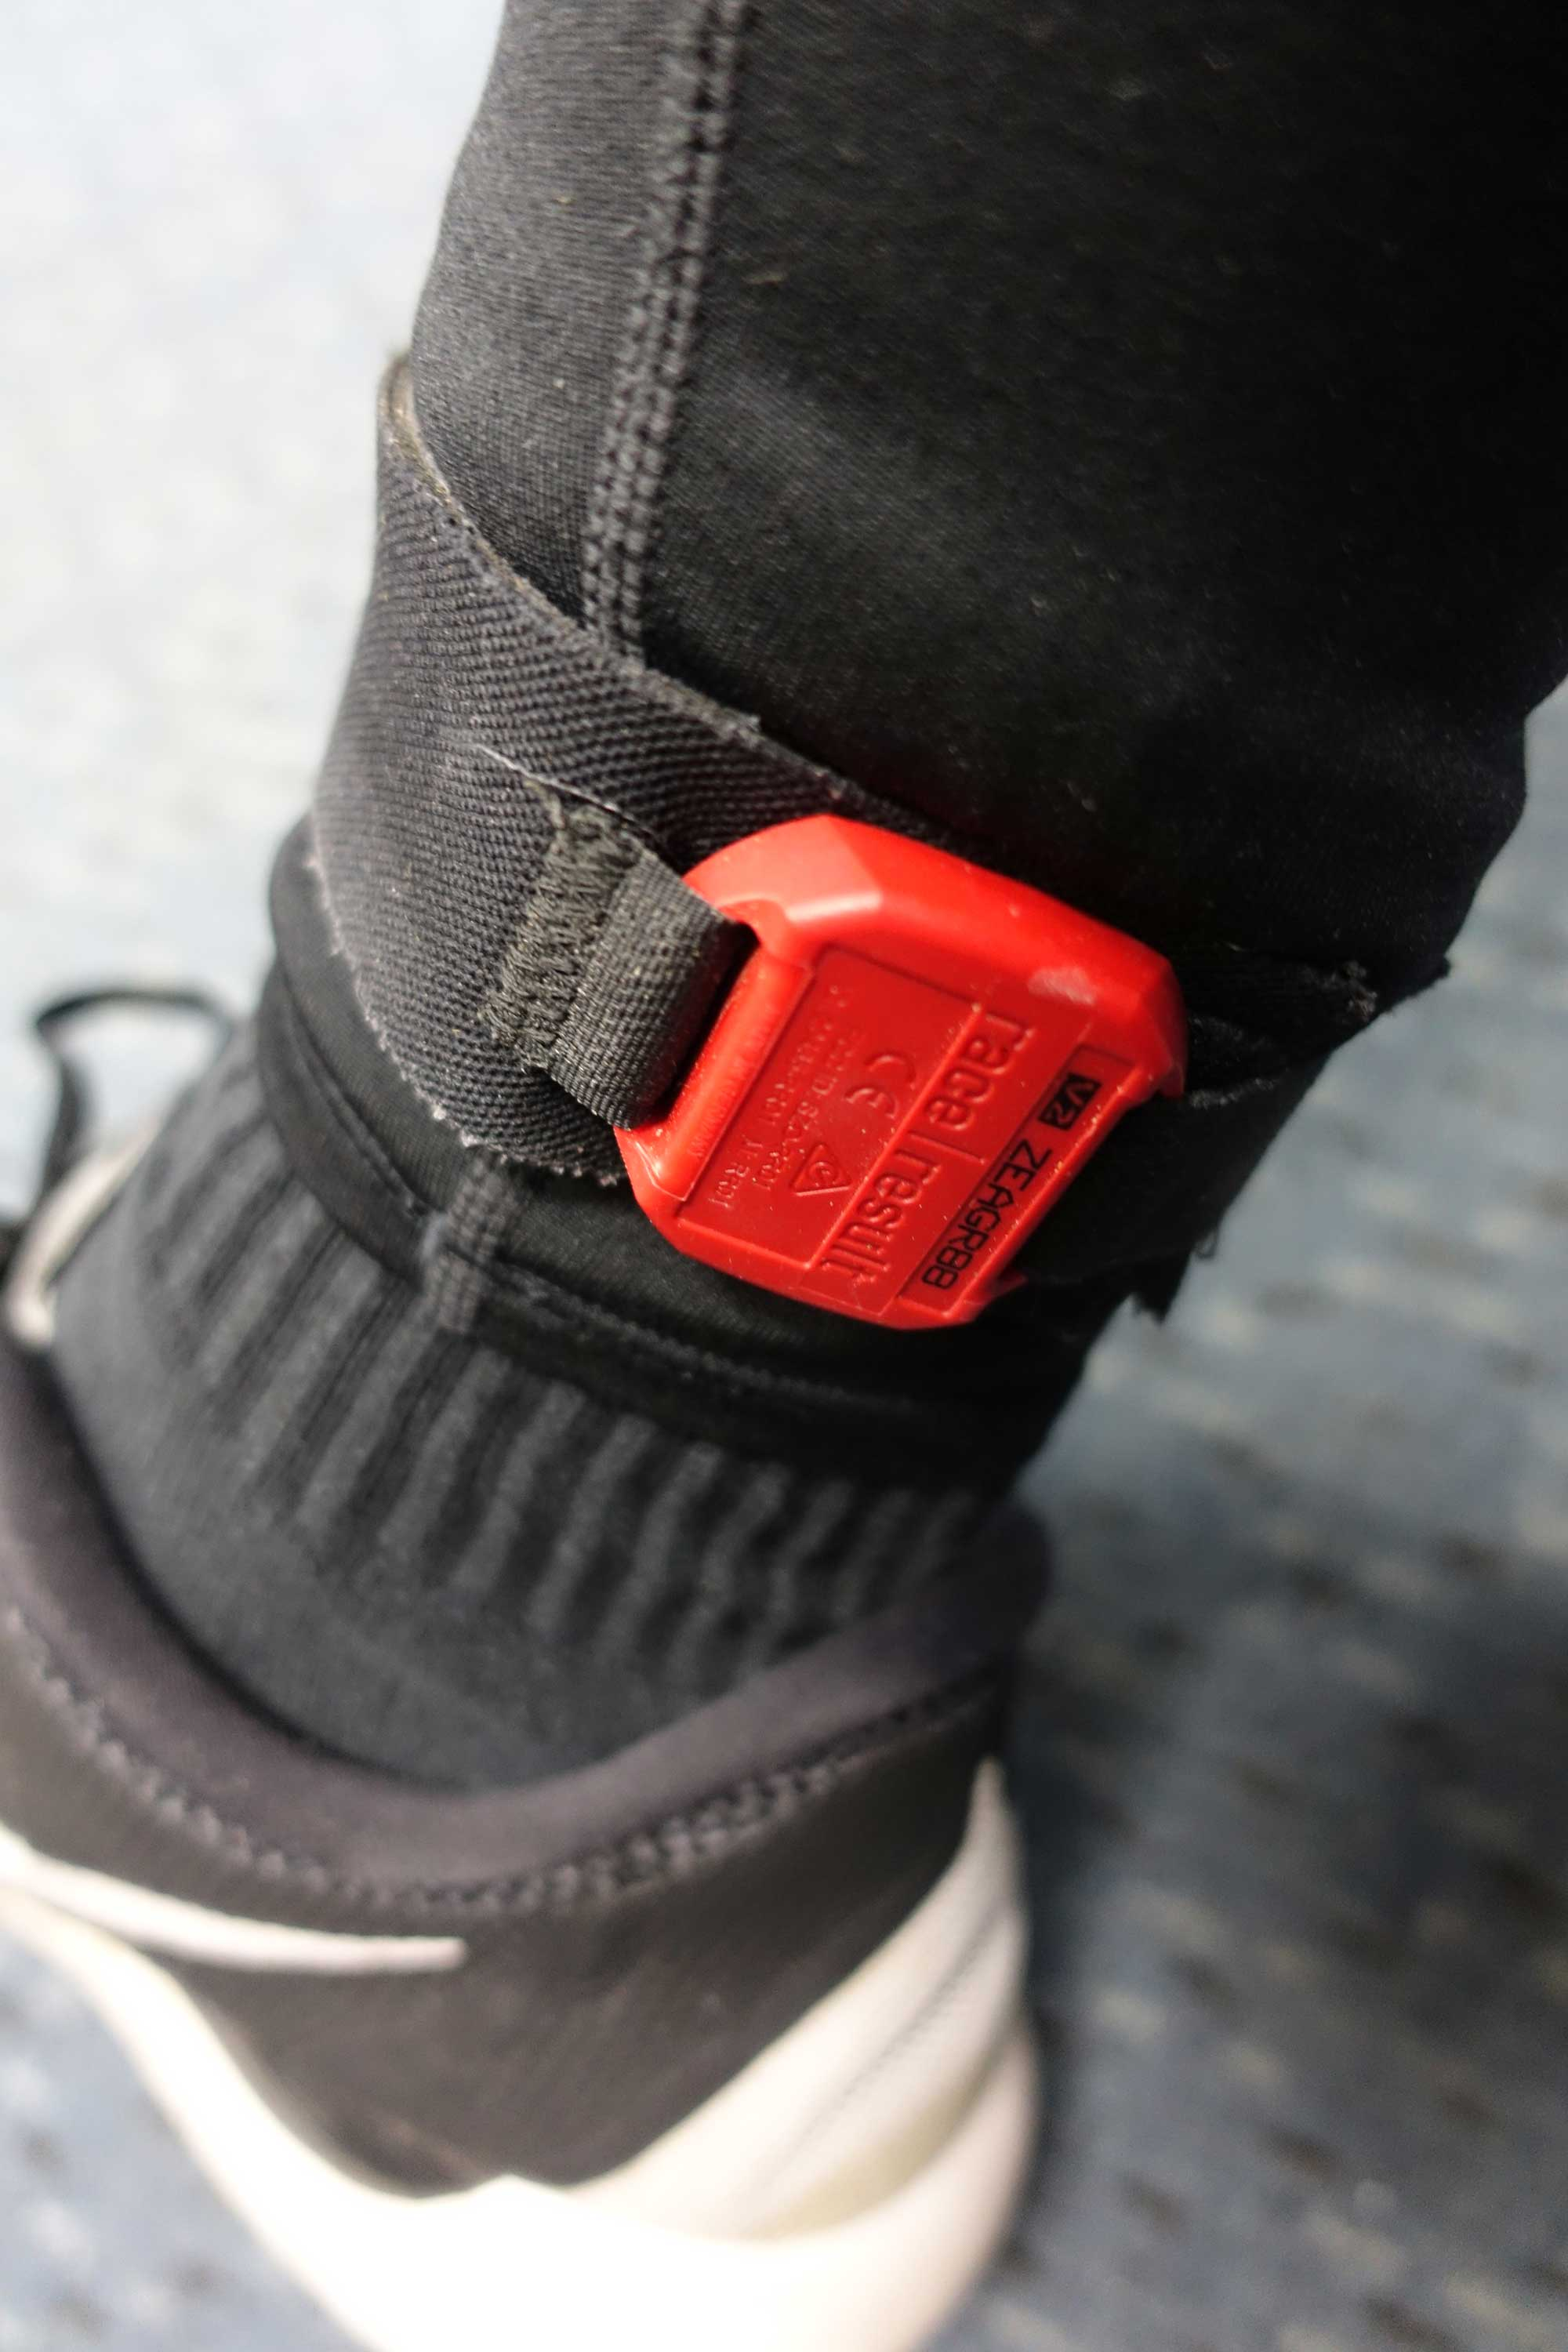 A red timing chip strapped to halef's ankle.